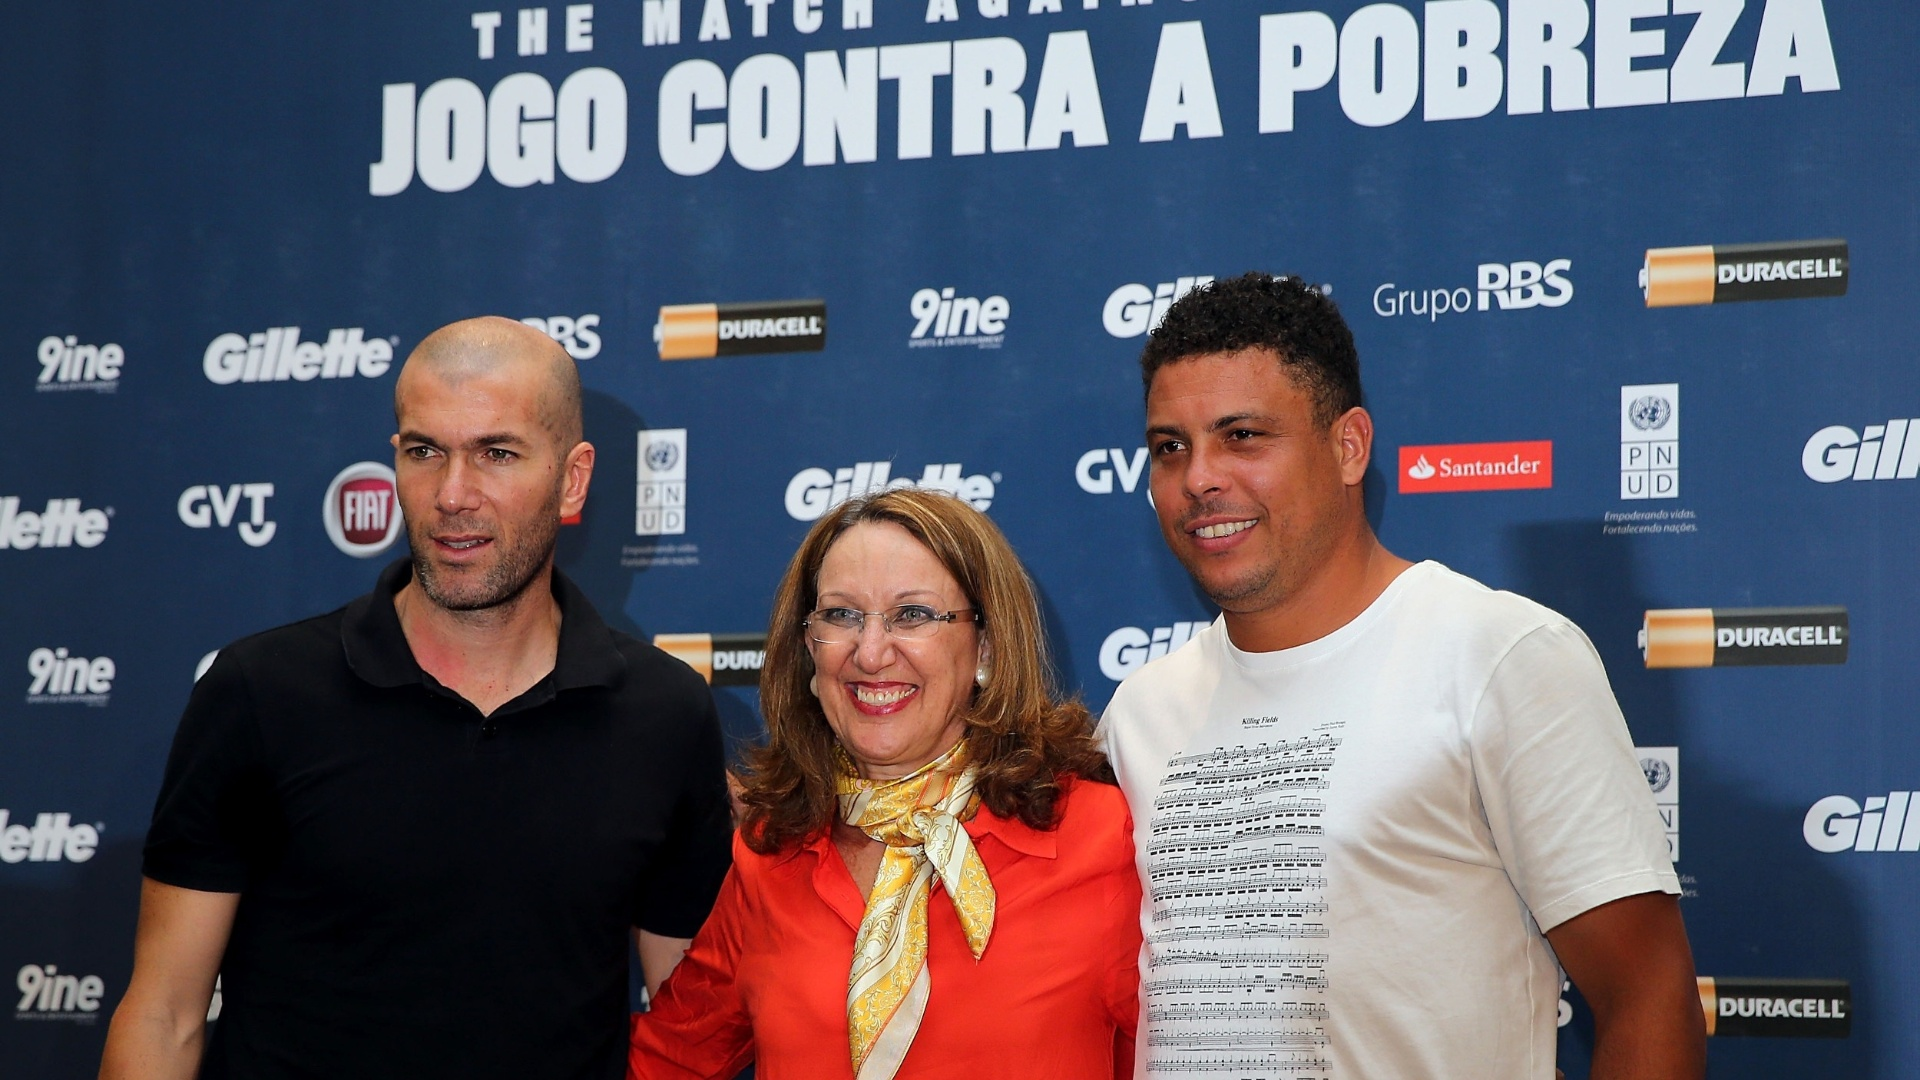 19.dez.2012 - Coletiva de imprensa com Zidane e Ronaldo para o Jogo Contra a Pobreza, em Porto Alegre, na Arena Grmio